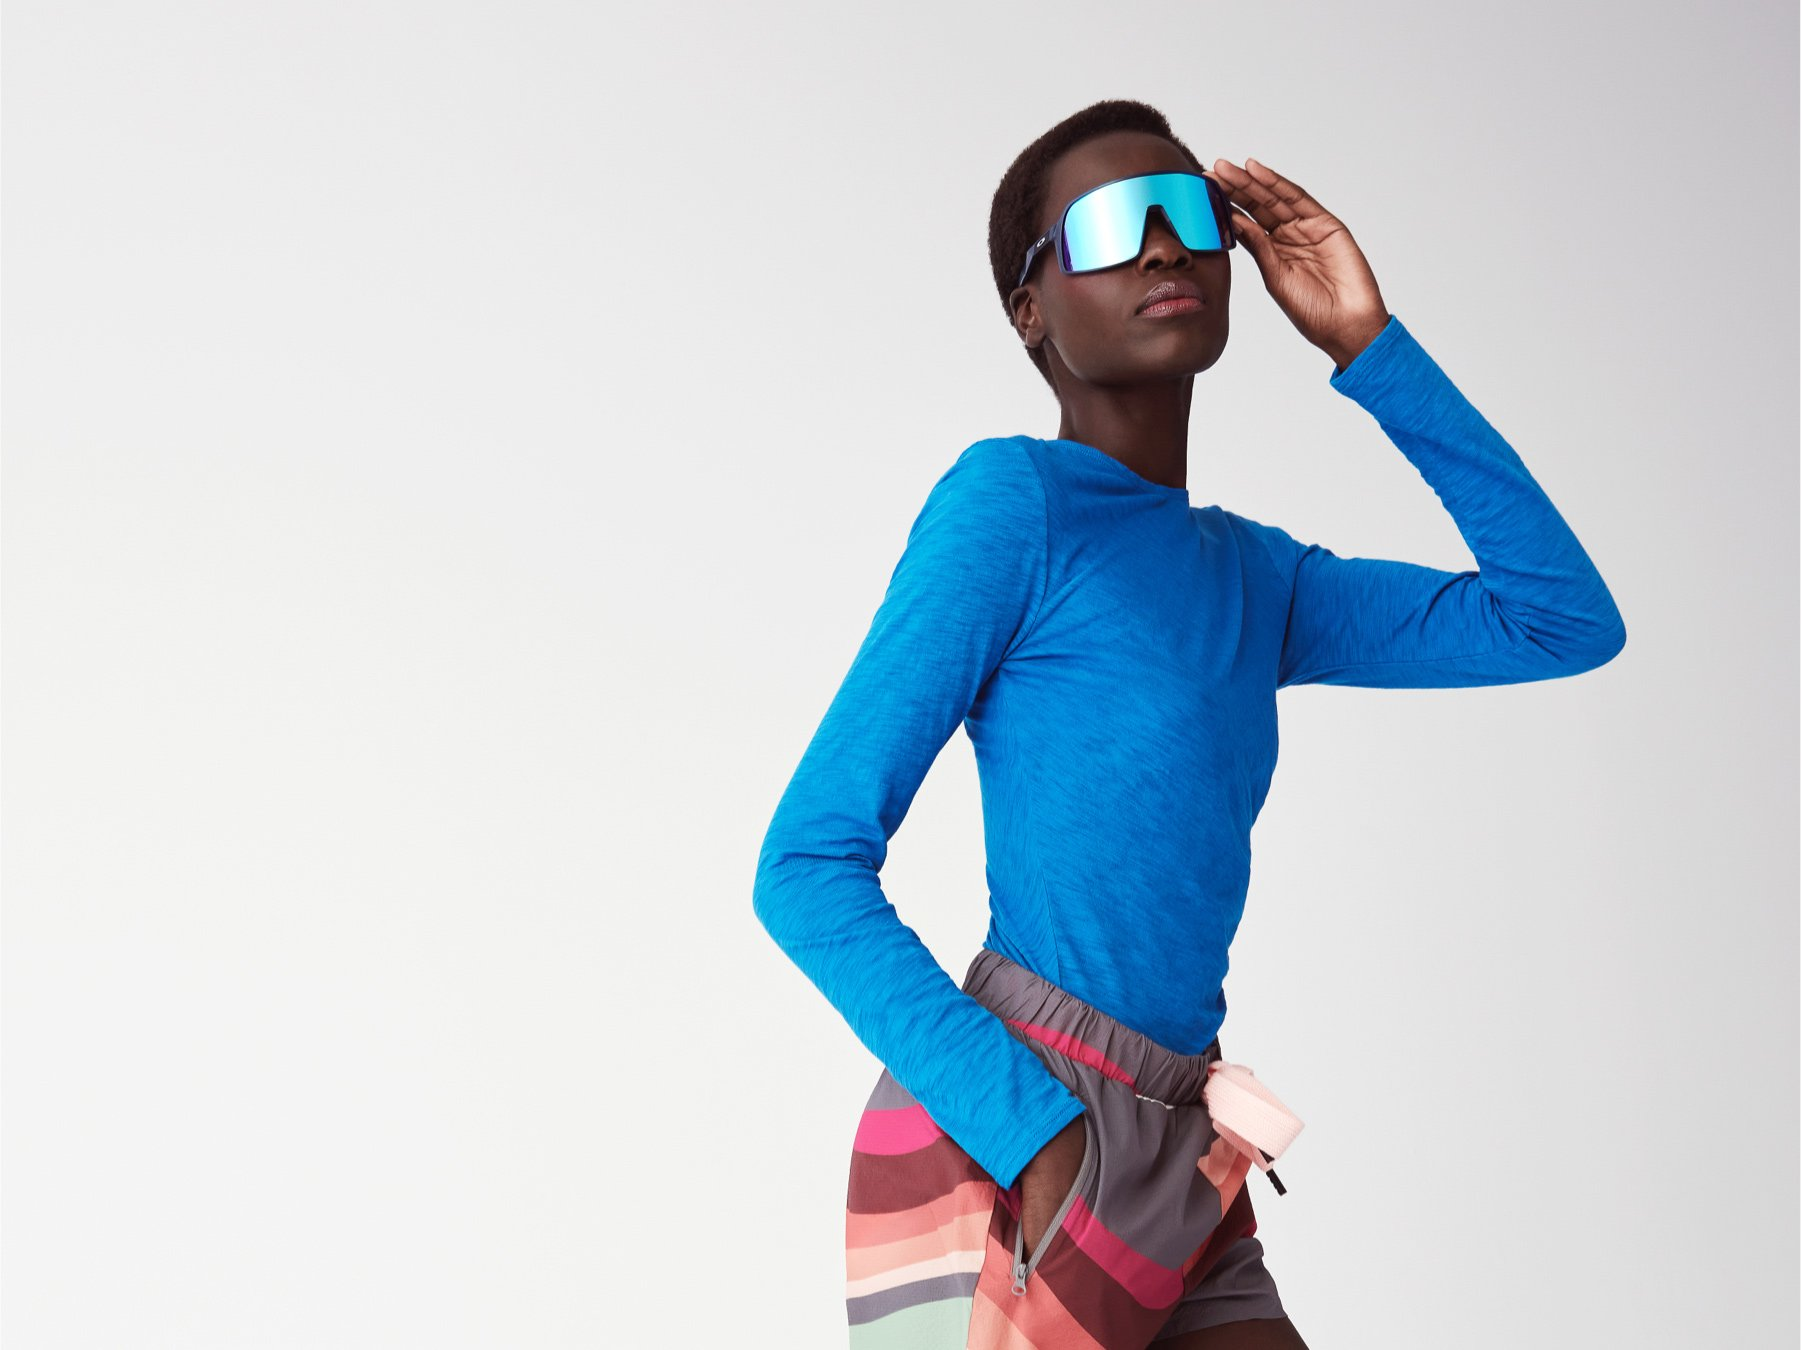 A Black female model with short hair runs in a bright blue long-sleeved tee and striped shorts.